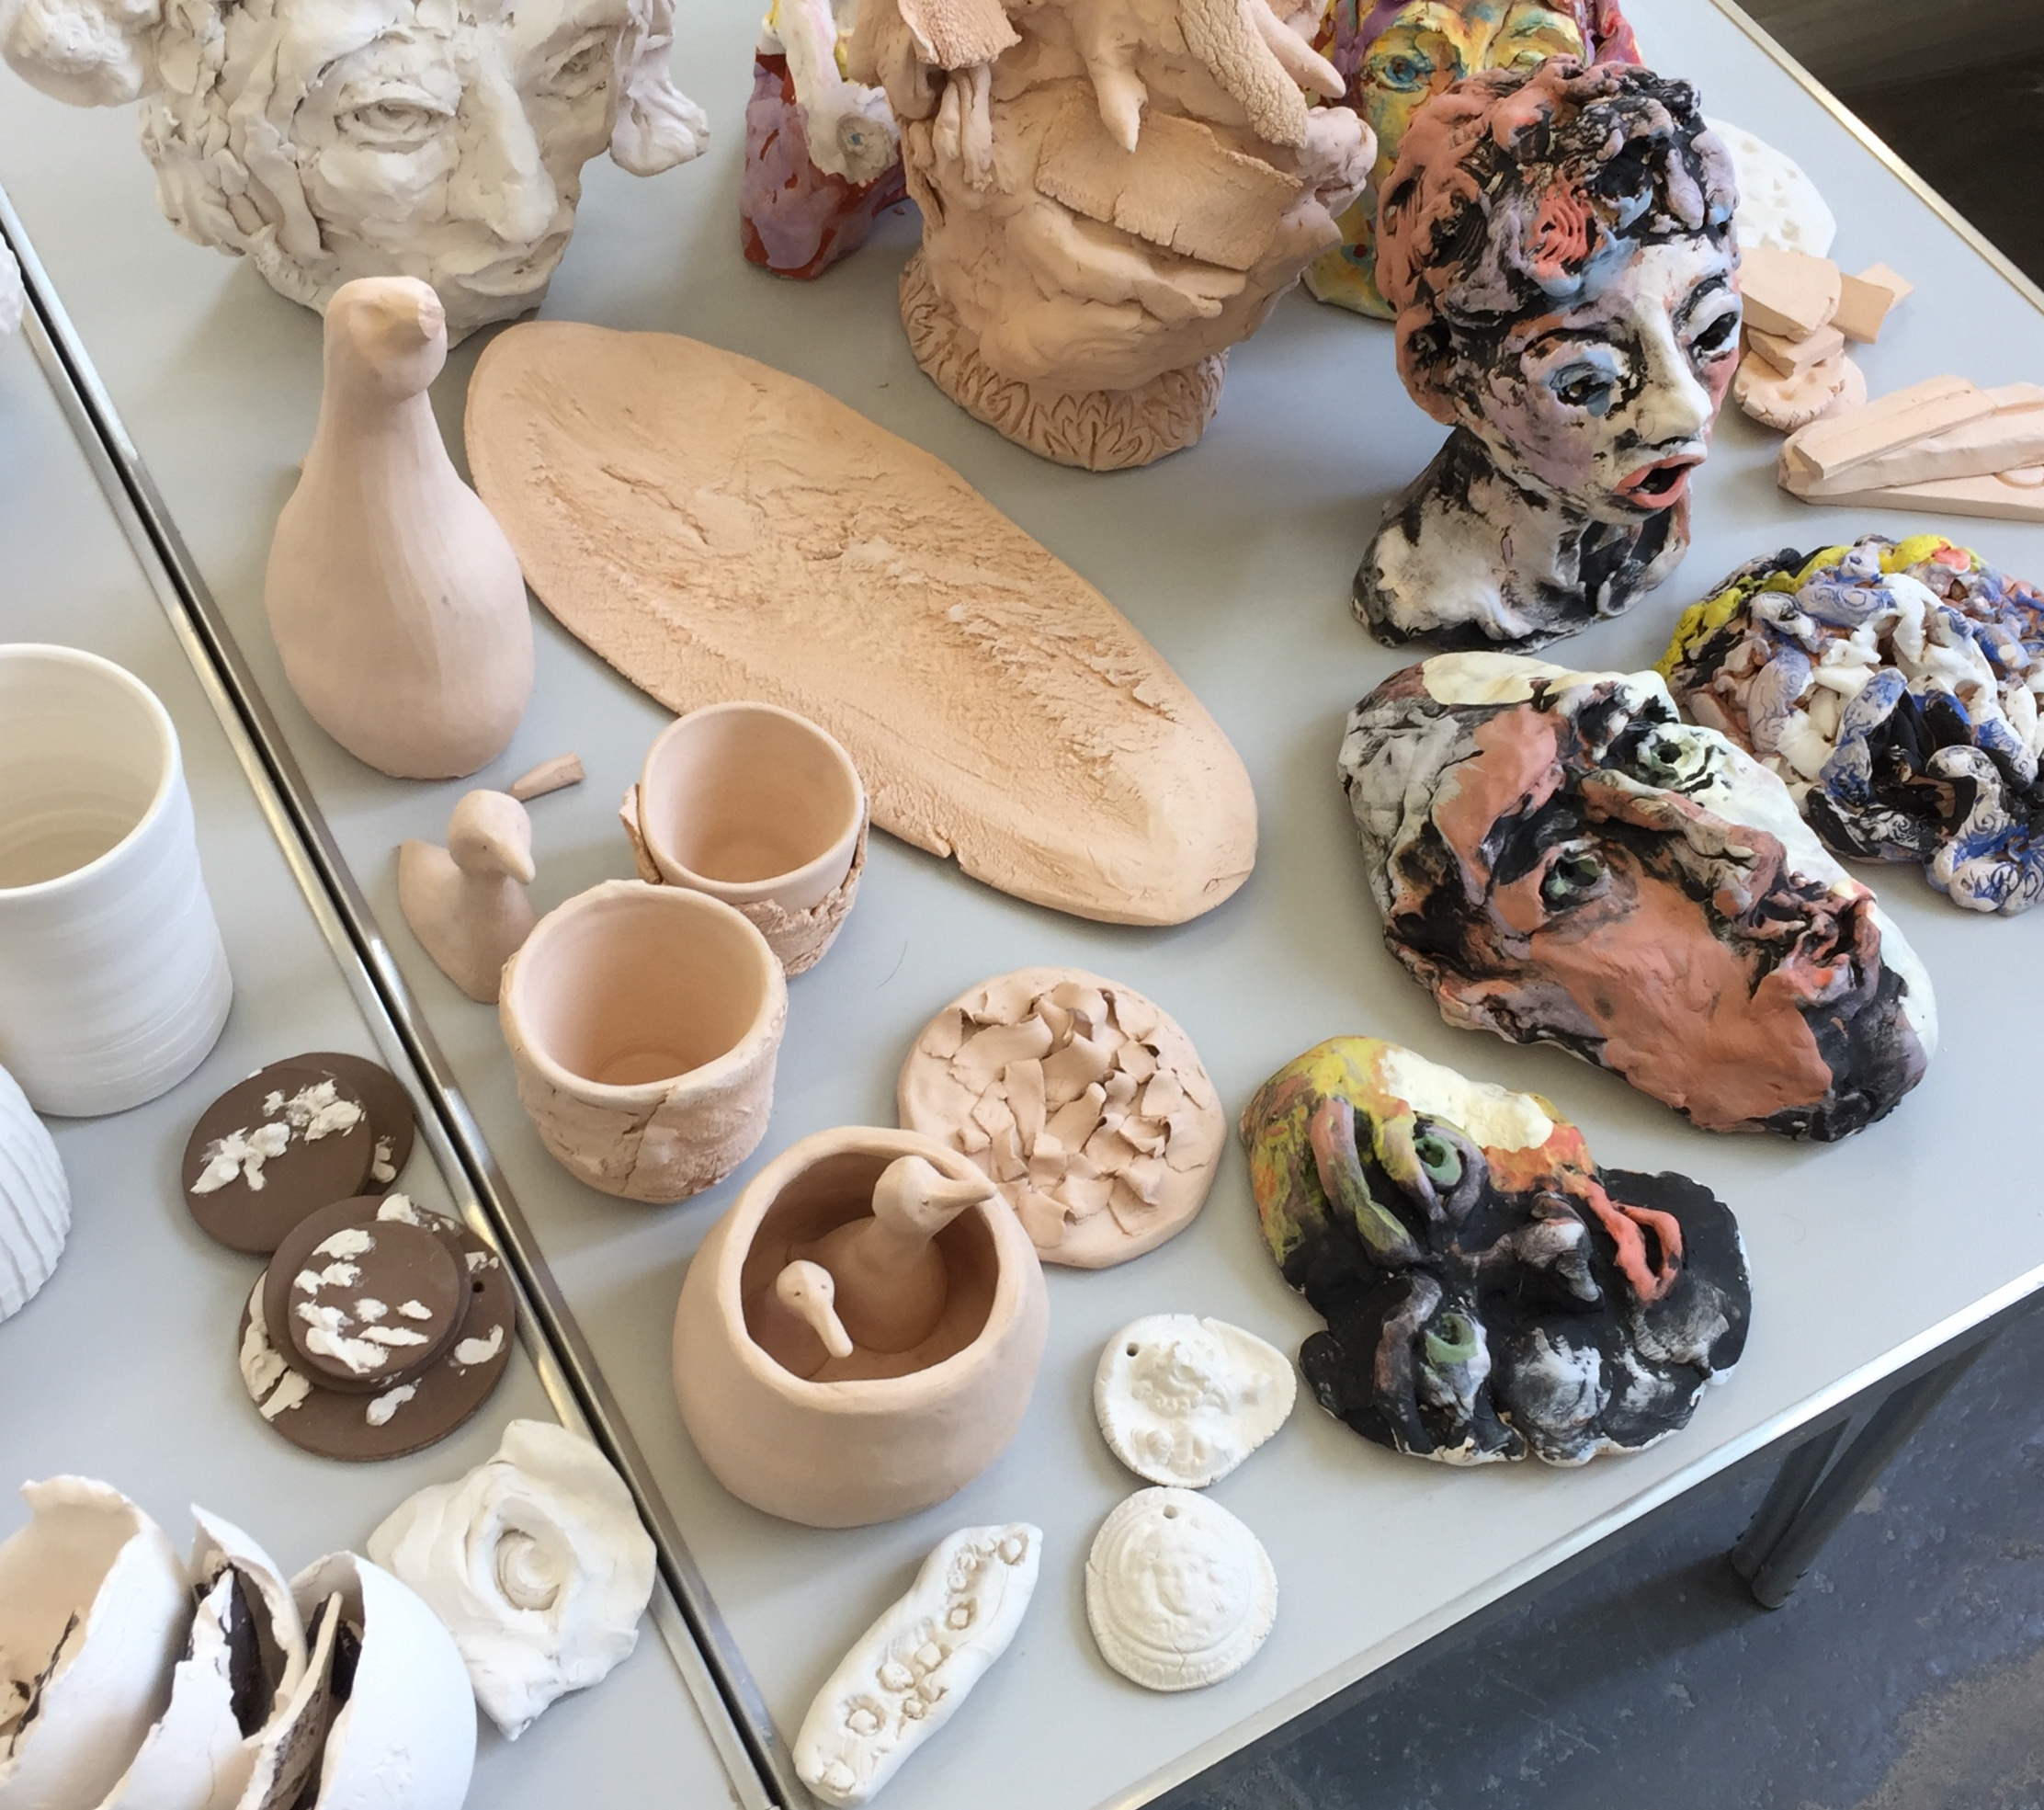 Ceramics for All! Feb/Mar 2020 (Thu evening) Image #0